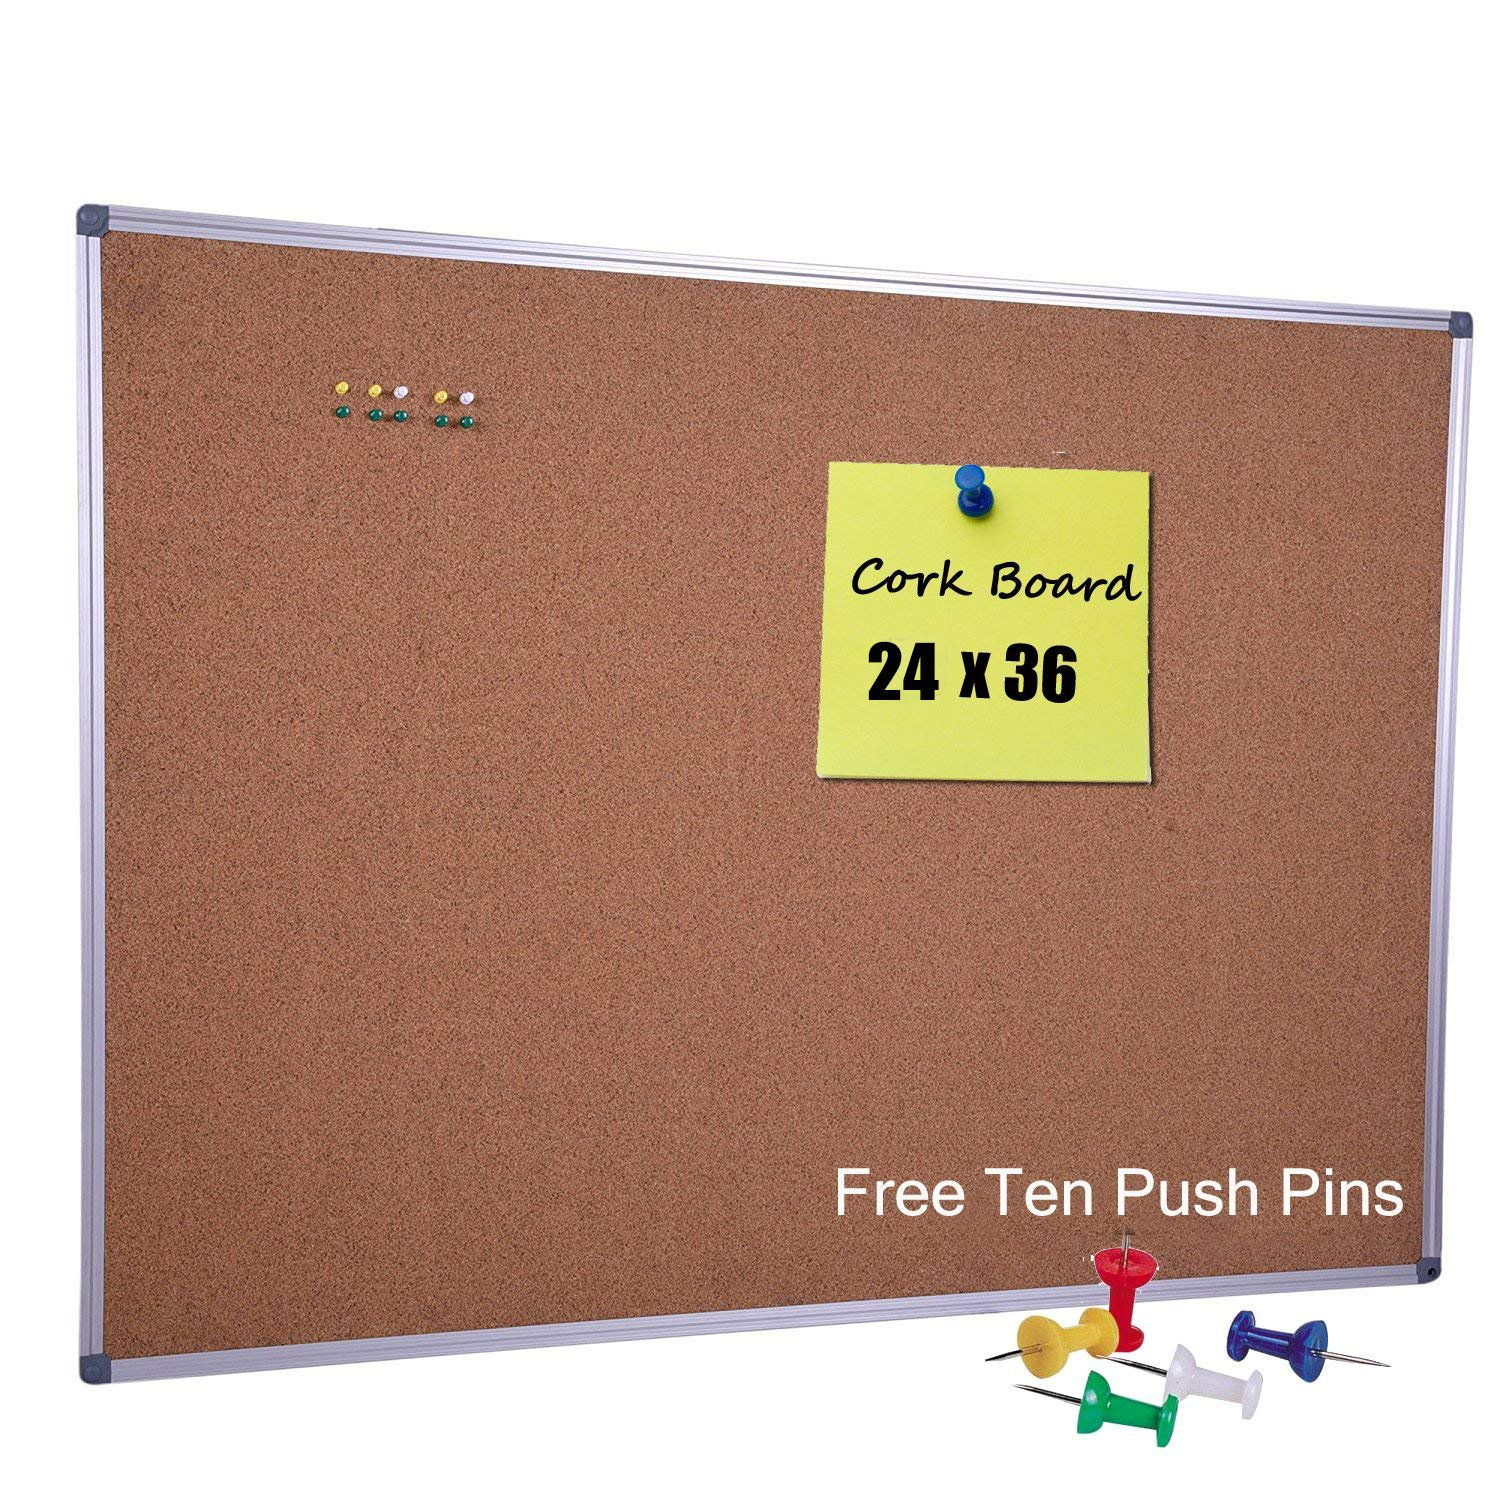 36 x 24 Inch Cork Board Notice Bulletin Message Board with Satin-Finished Aluminum Frame for Home Office Classroom School, 10 Free Push Pins Included DexBoard